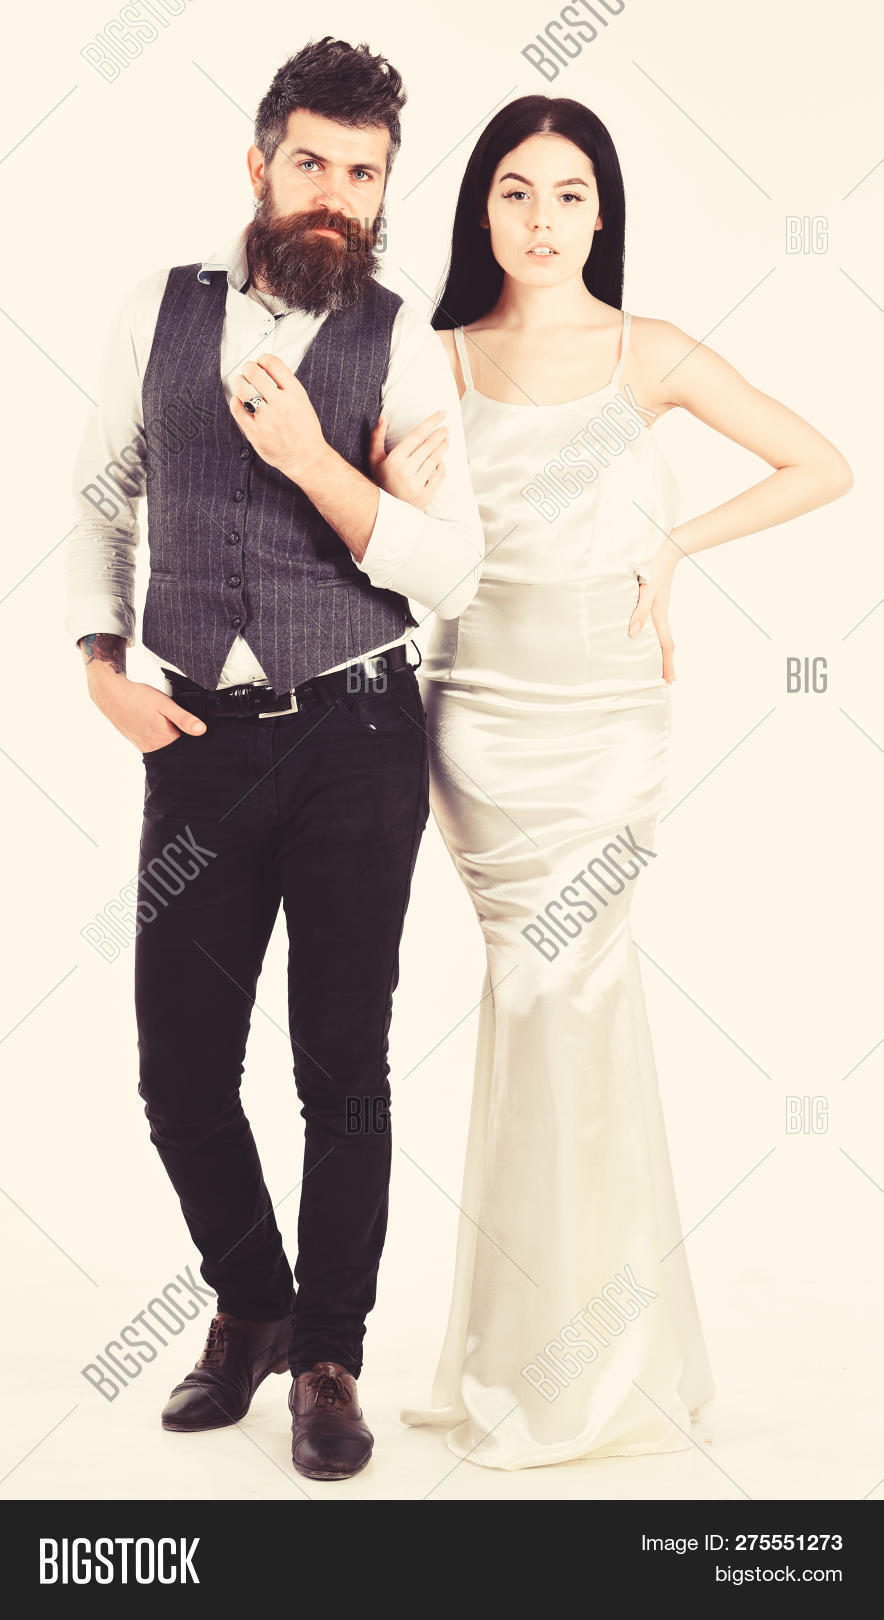 Bearded Hipster Bride Image Photo Free Trial Bigstock